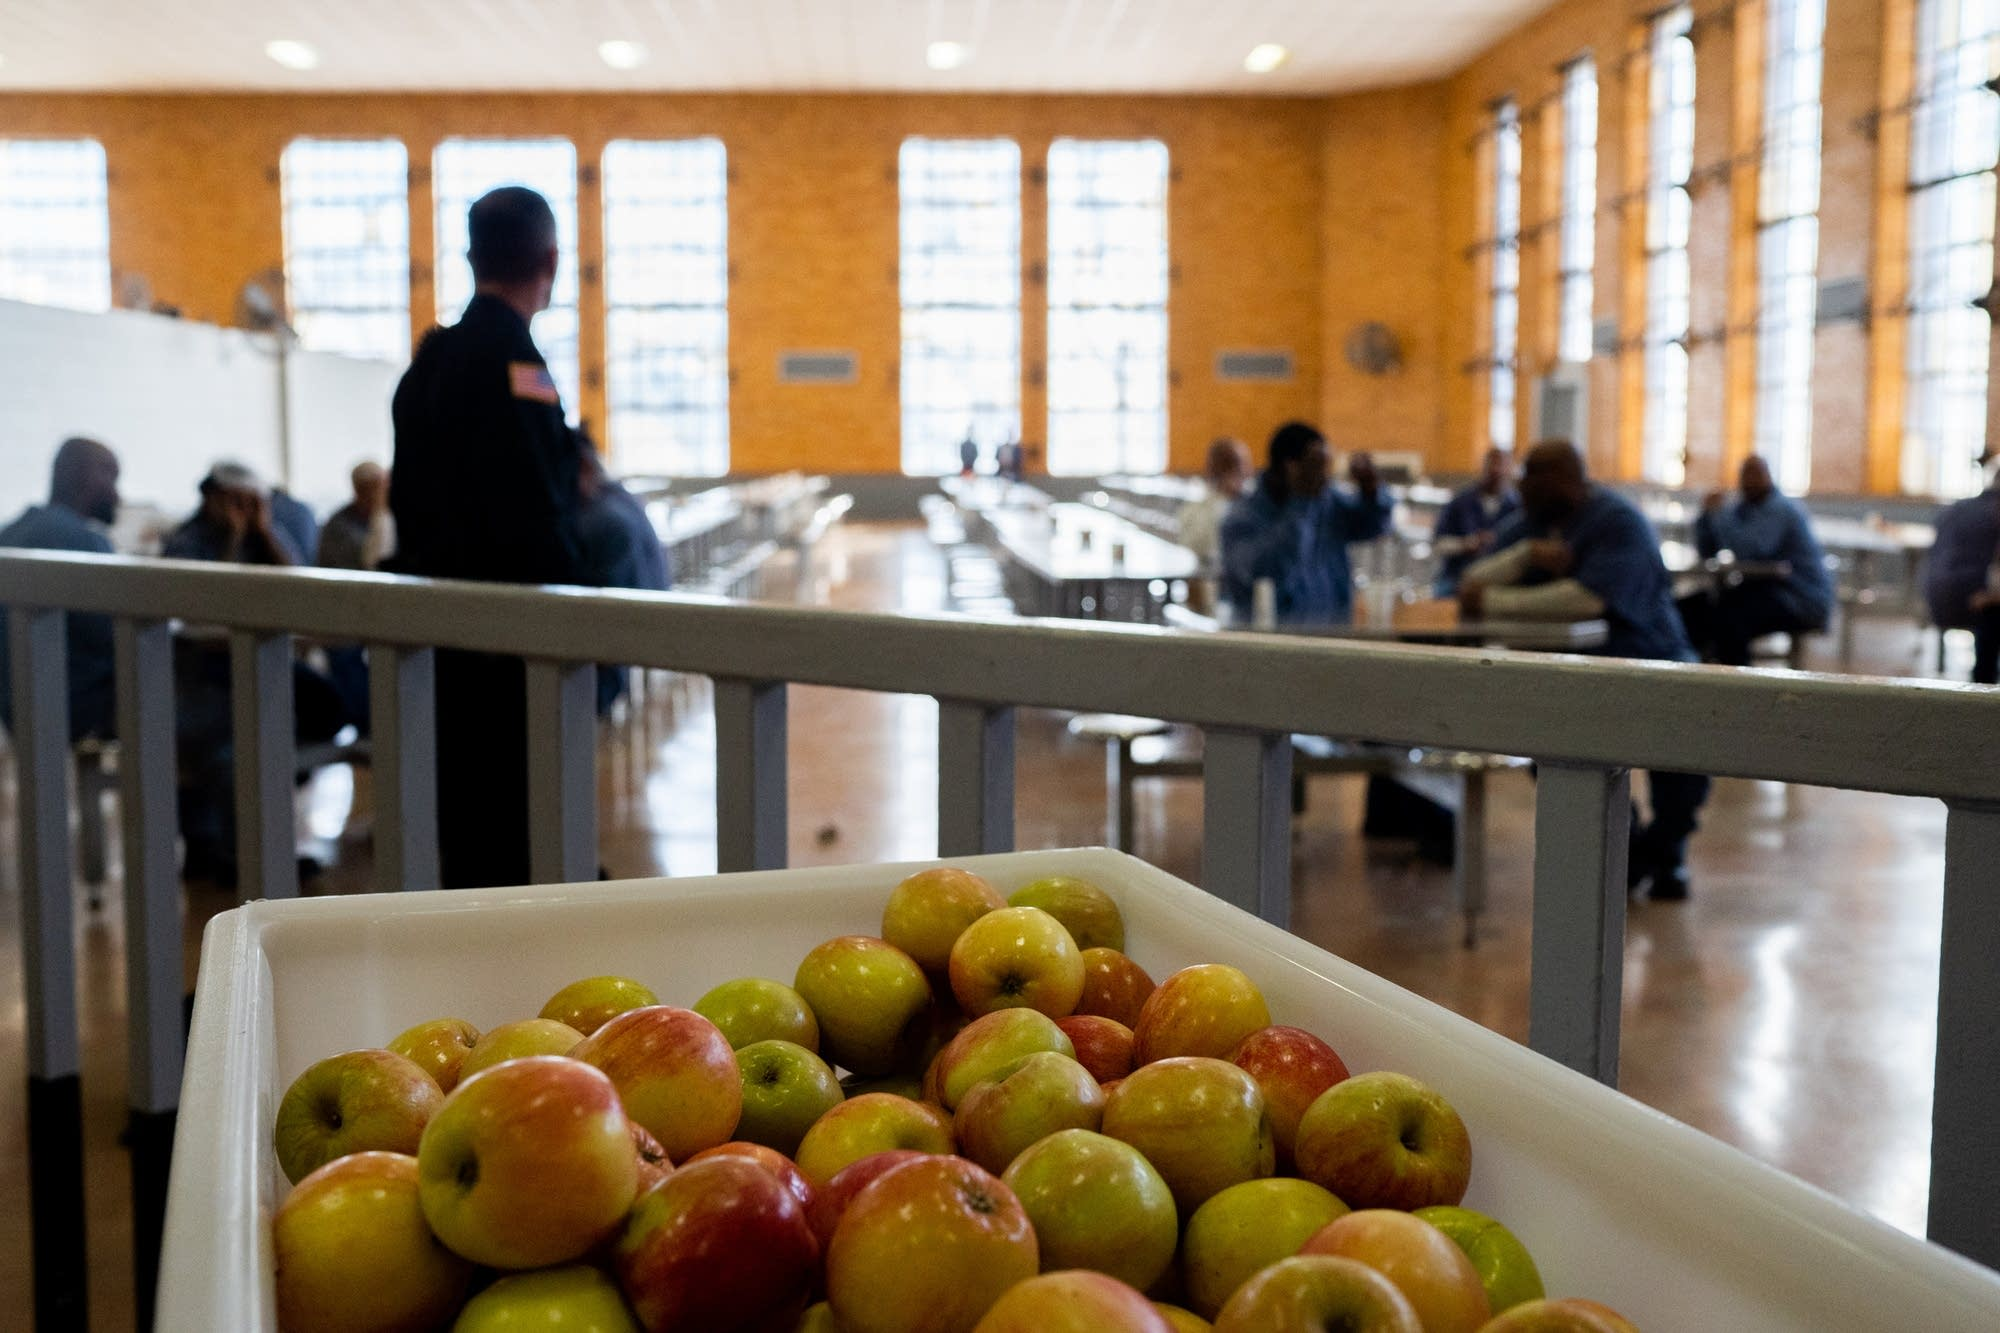 A cart of apples sits out in the dining hall of Stillwater prison.